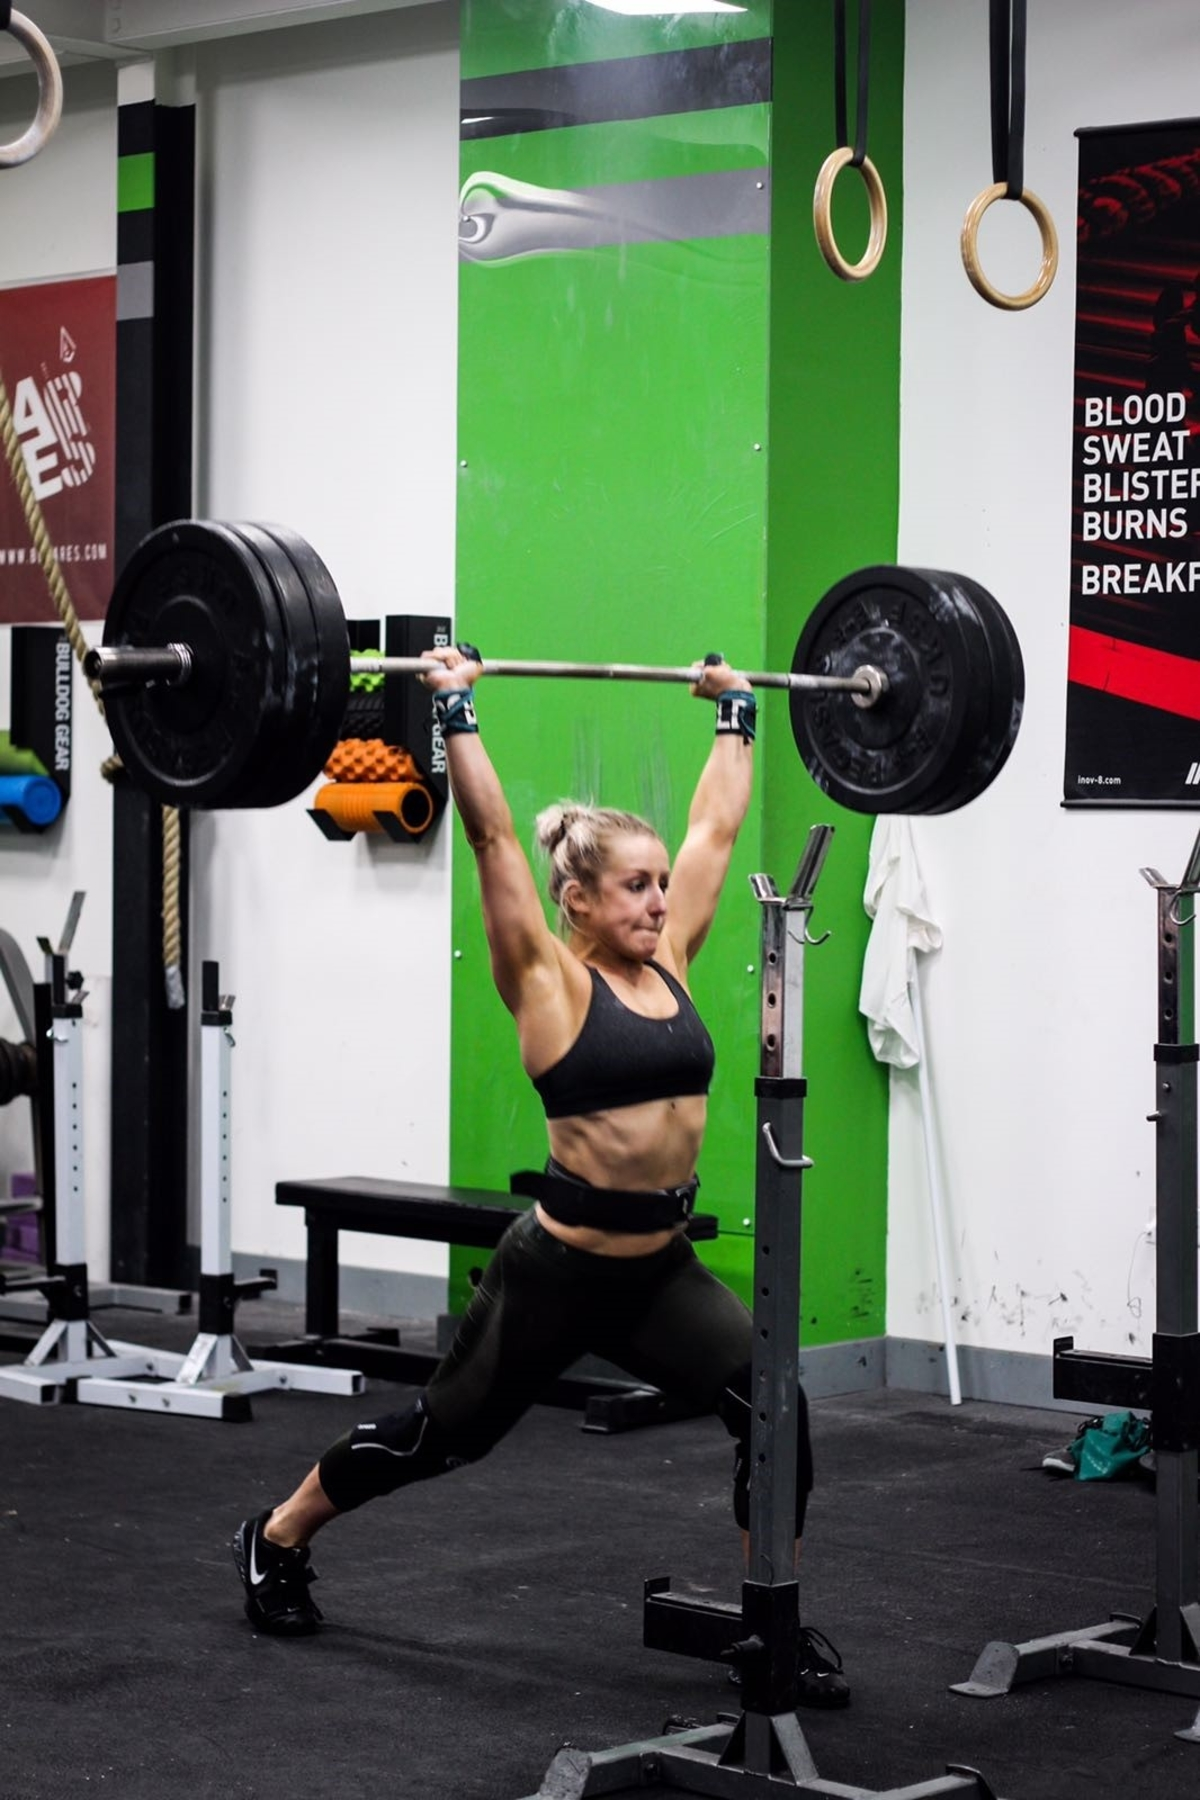 Olympic weightlifting classes